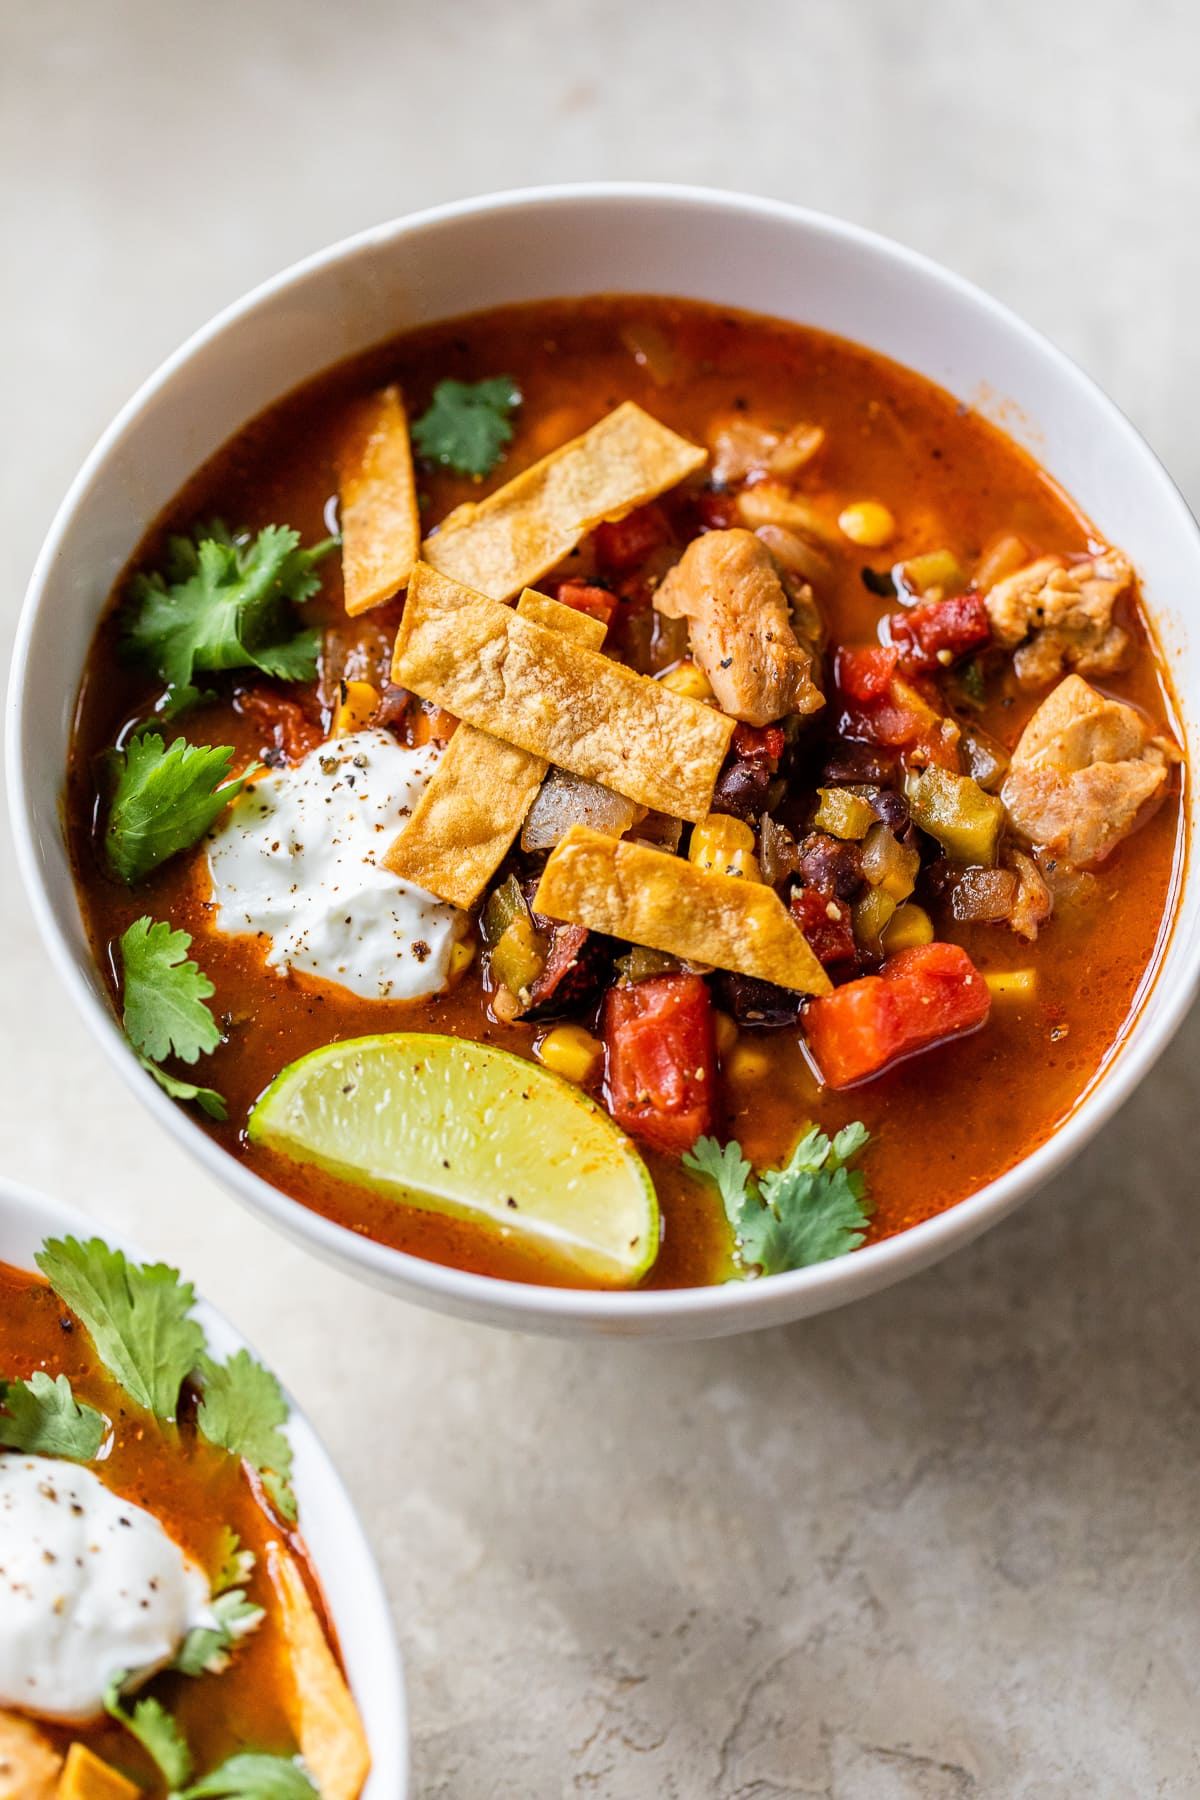 Healthy and delicious Southwest Chicken Soup topped with tortilla strips.